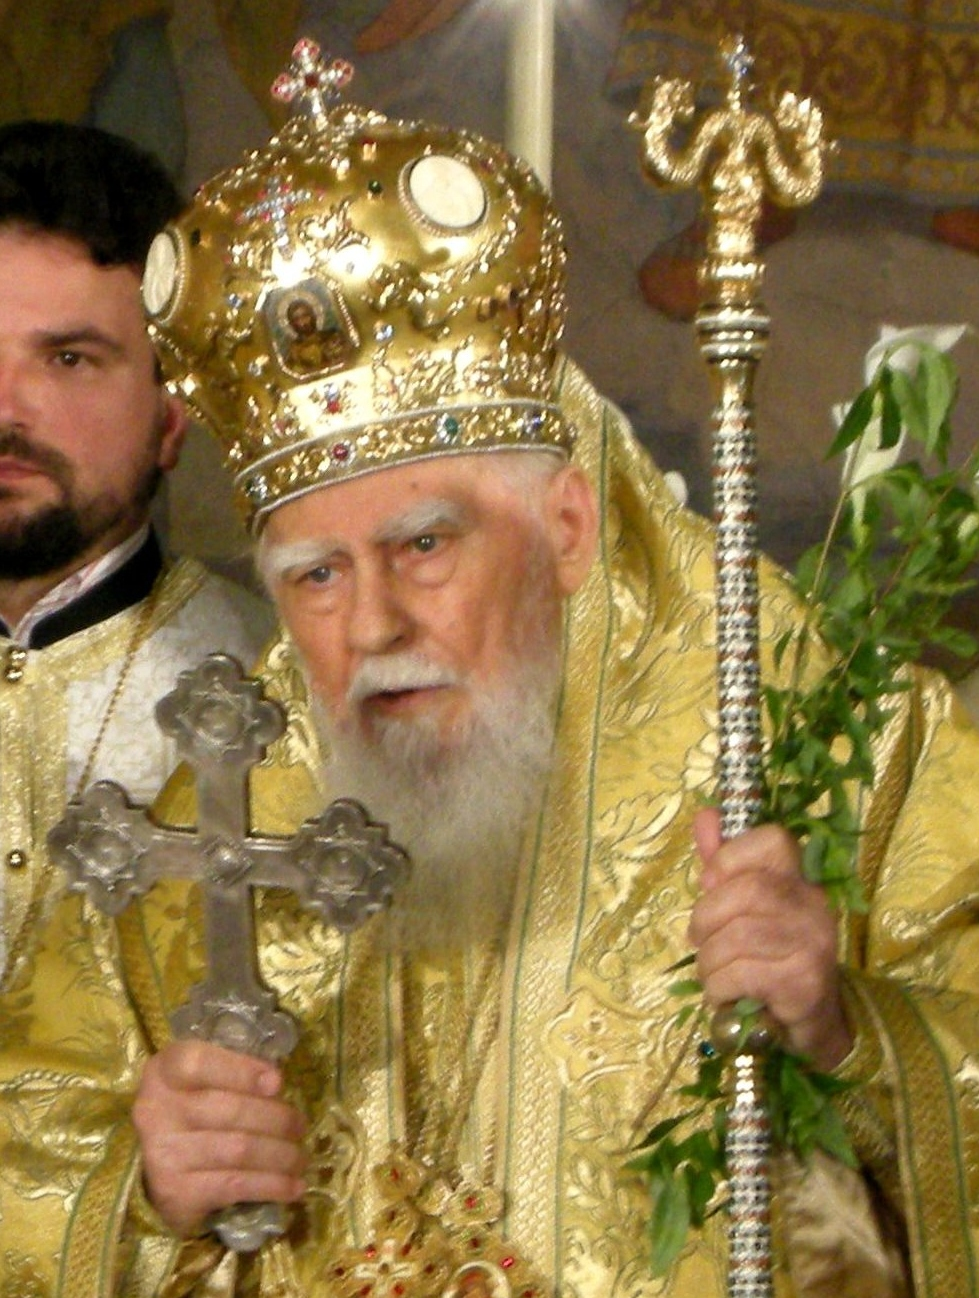 How layman should address the orthodox spiritual clergy according to his holiness patriarch of bulgaria maxim kristyandbryce Image collections